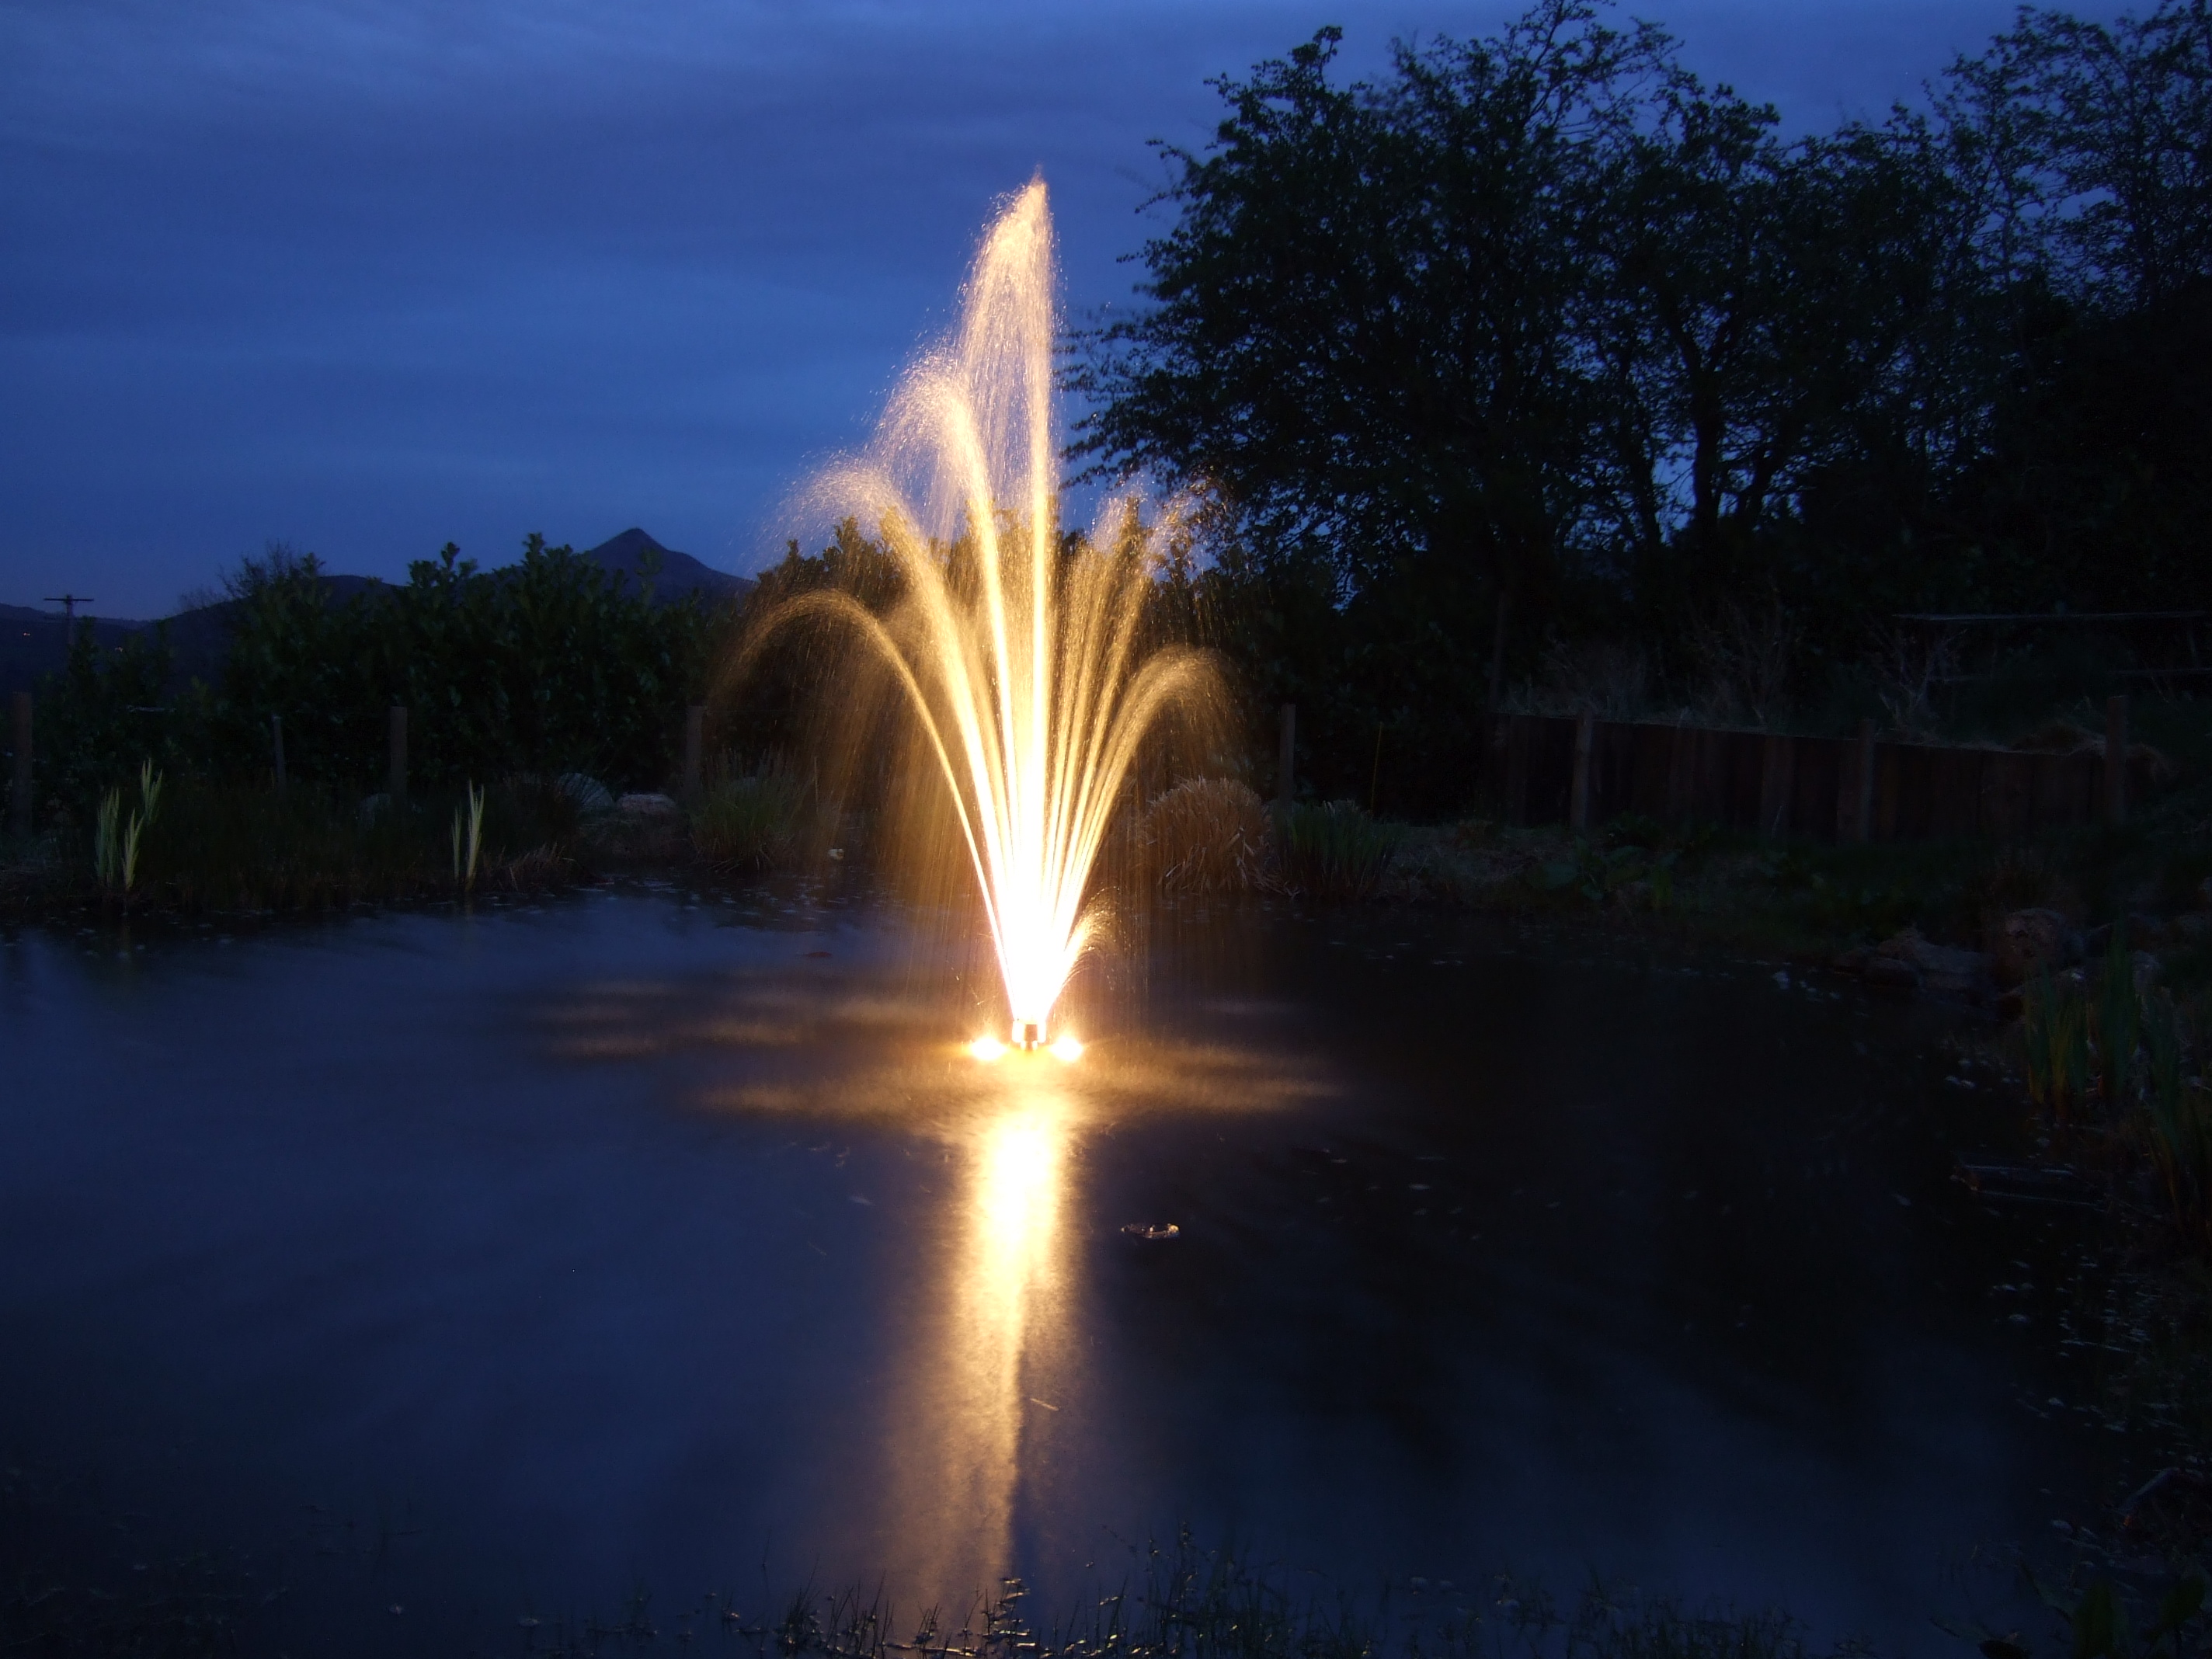 Nightime Water Features